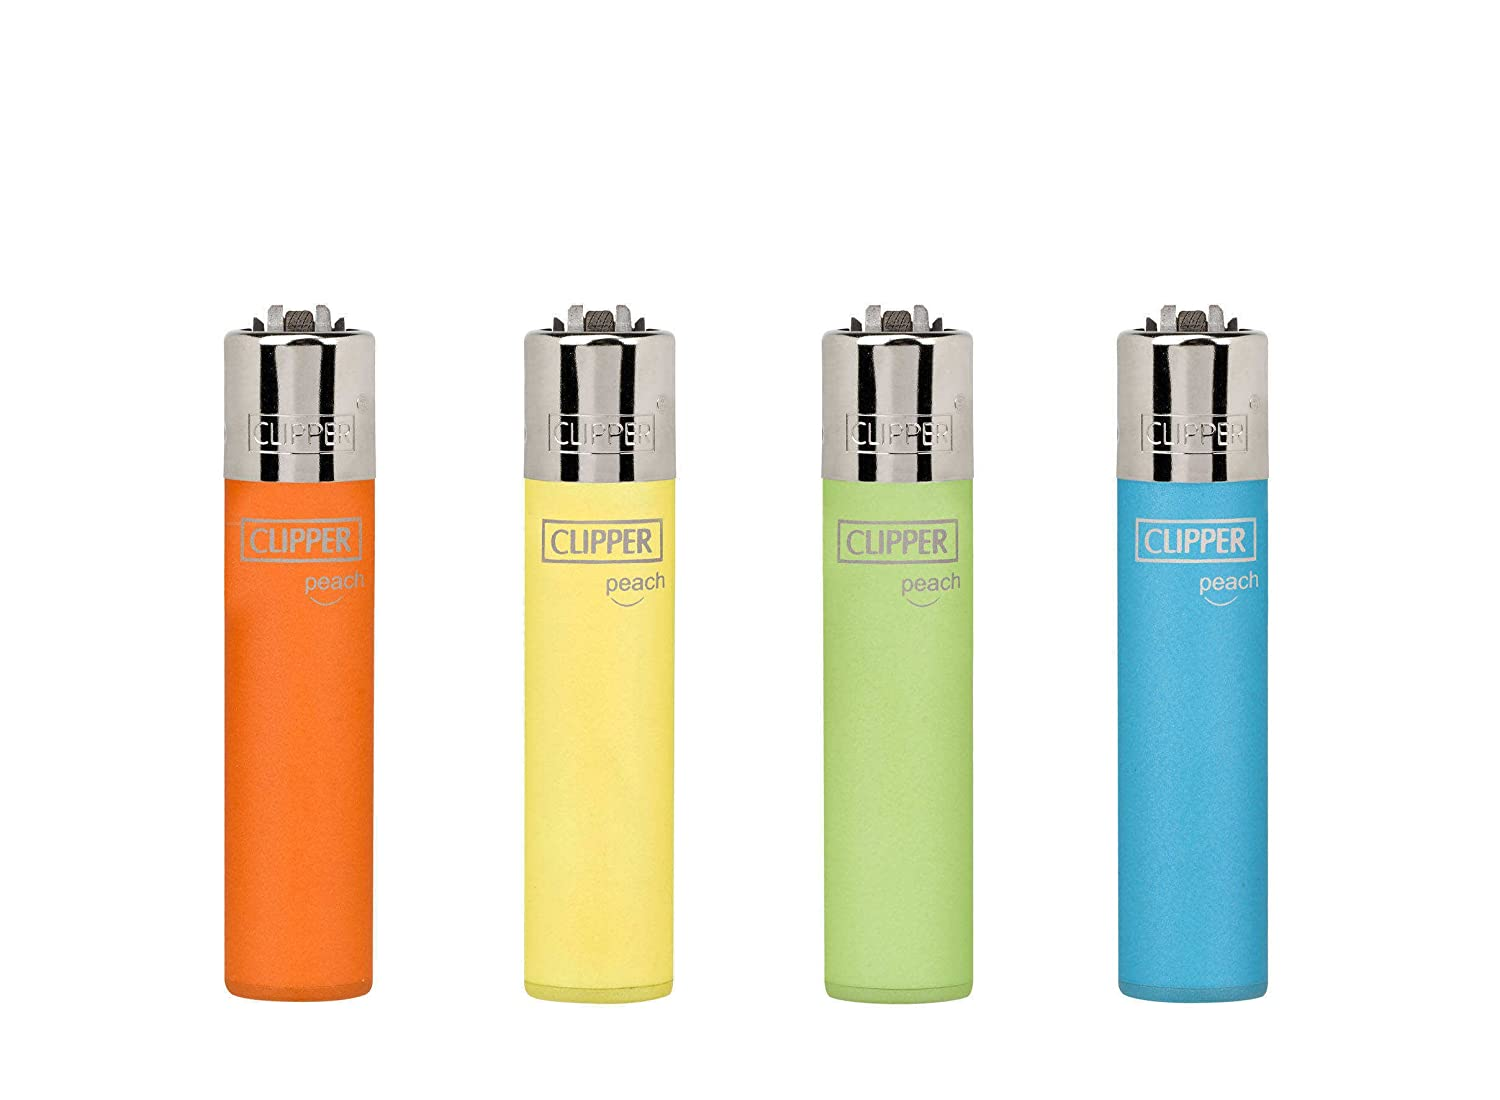 Clipper 53, Peach -mini Collection, Pack of 4 Lighters FLAMAGAS